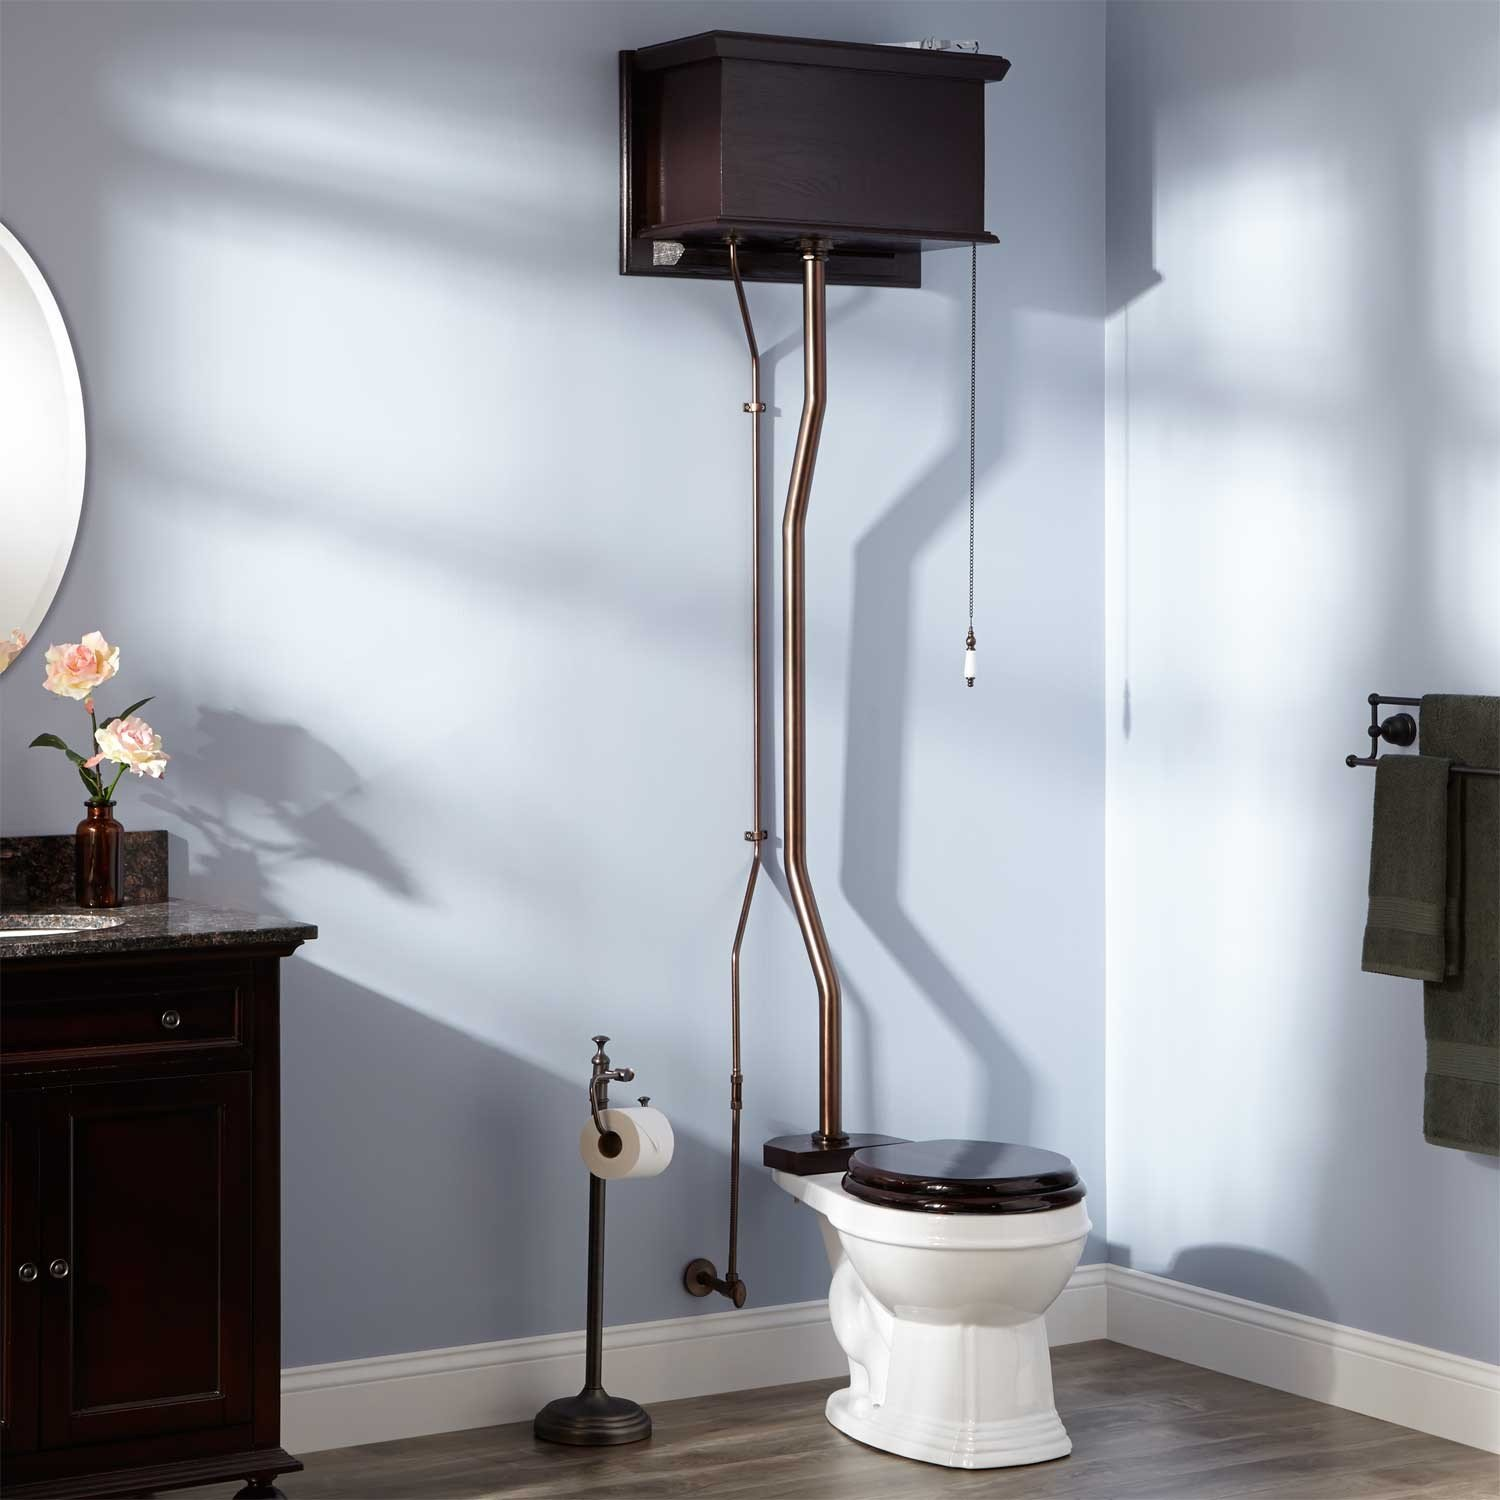 Naiture Mahogany High Tank Pull Chain Water Closet With White Round Bowl And Oil Rubbed Bronze Finish Hardware by SH